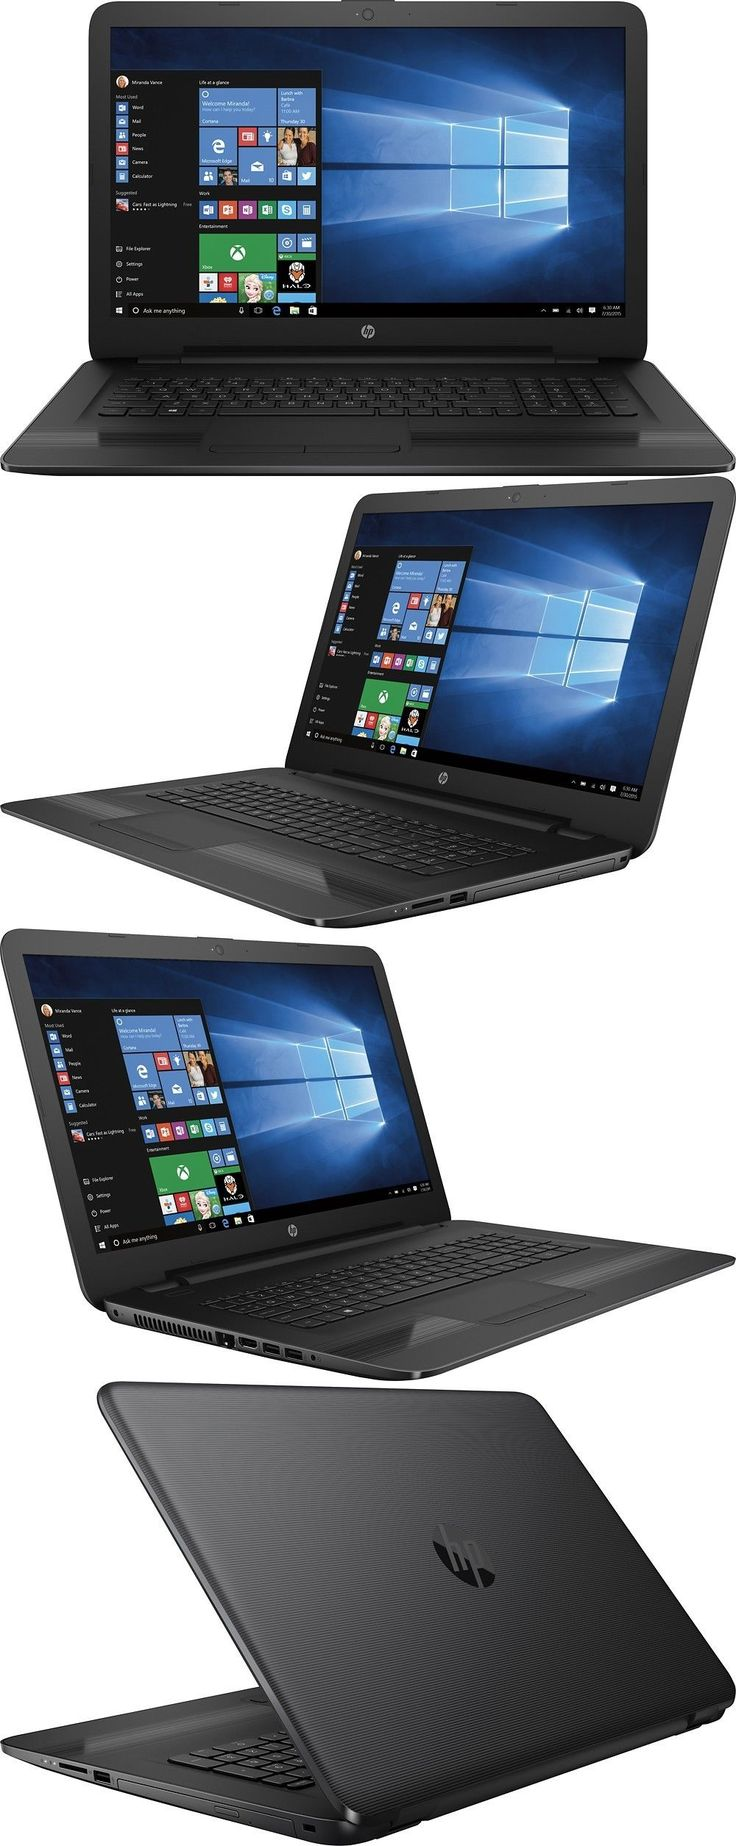 Notebook samsung expert x37 - Computers Tablets Networking Hp 17 3 Laptop Intel Core I7 8gb Memory 1tb Hard Drive Win